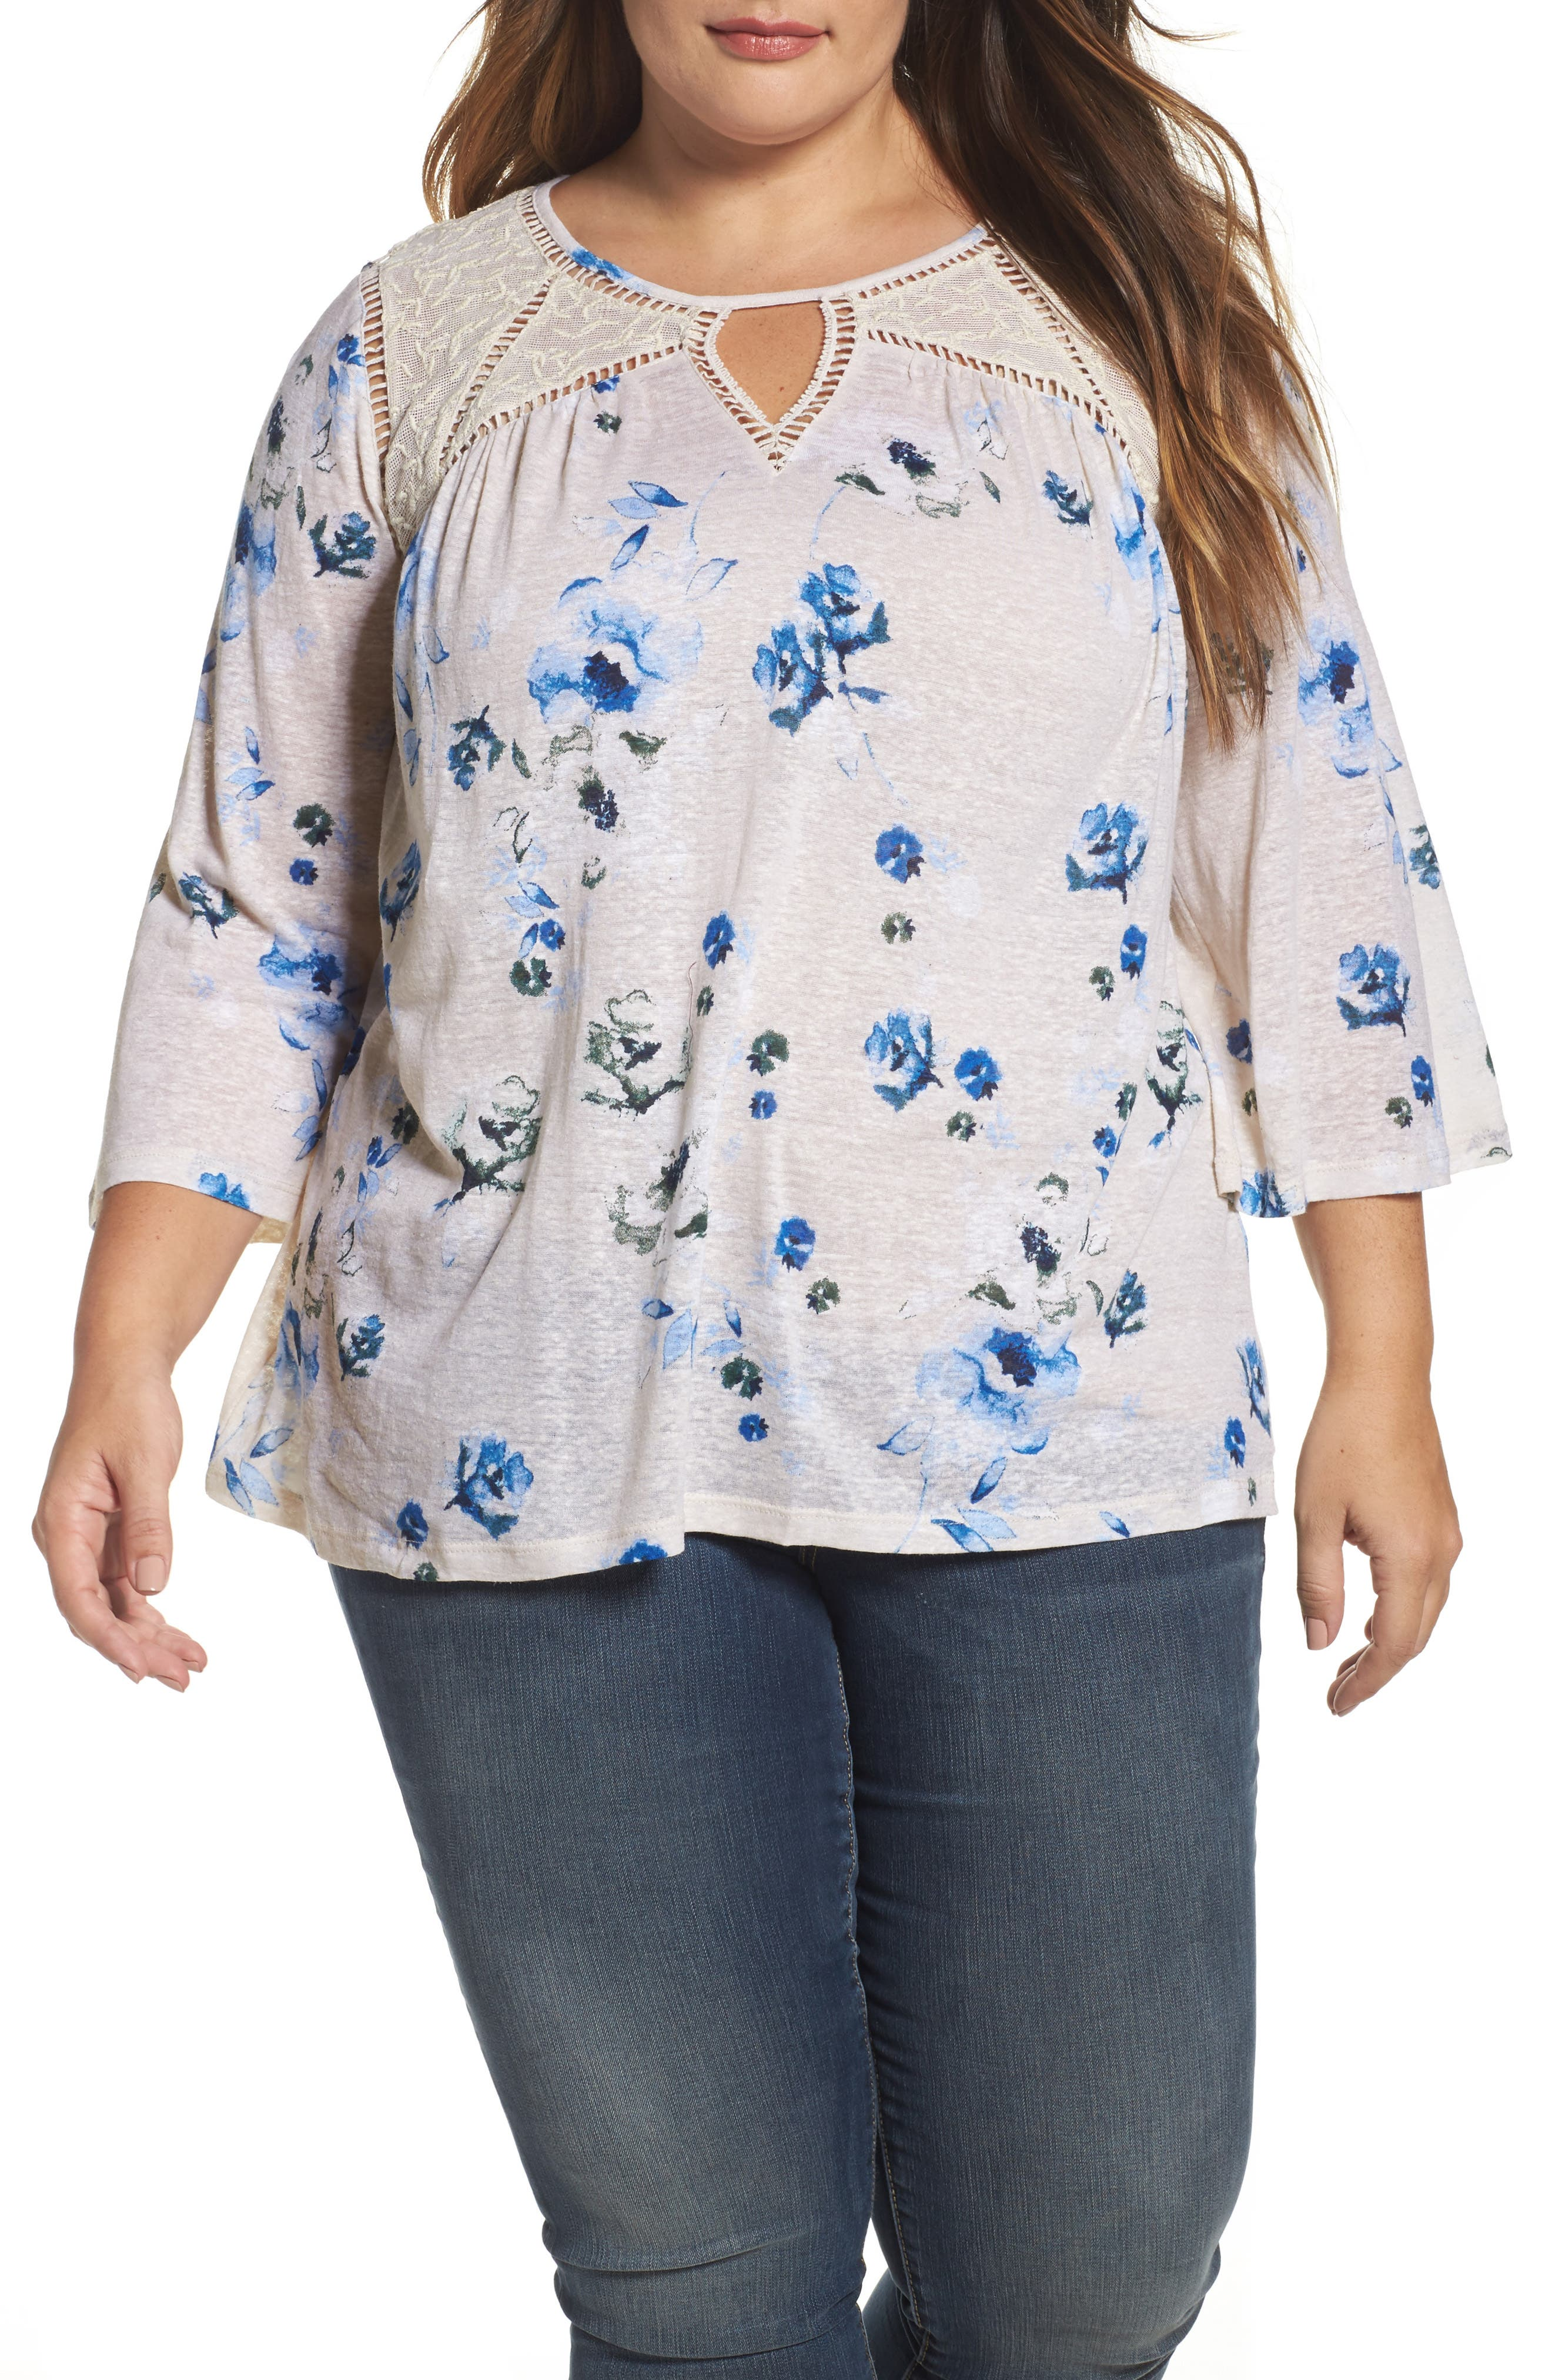 Alternate Image 1 Selected - Lucky Brand Lace Yoke Floral Peasant Top (Plus Size)